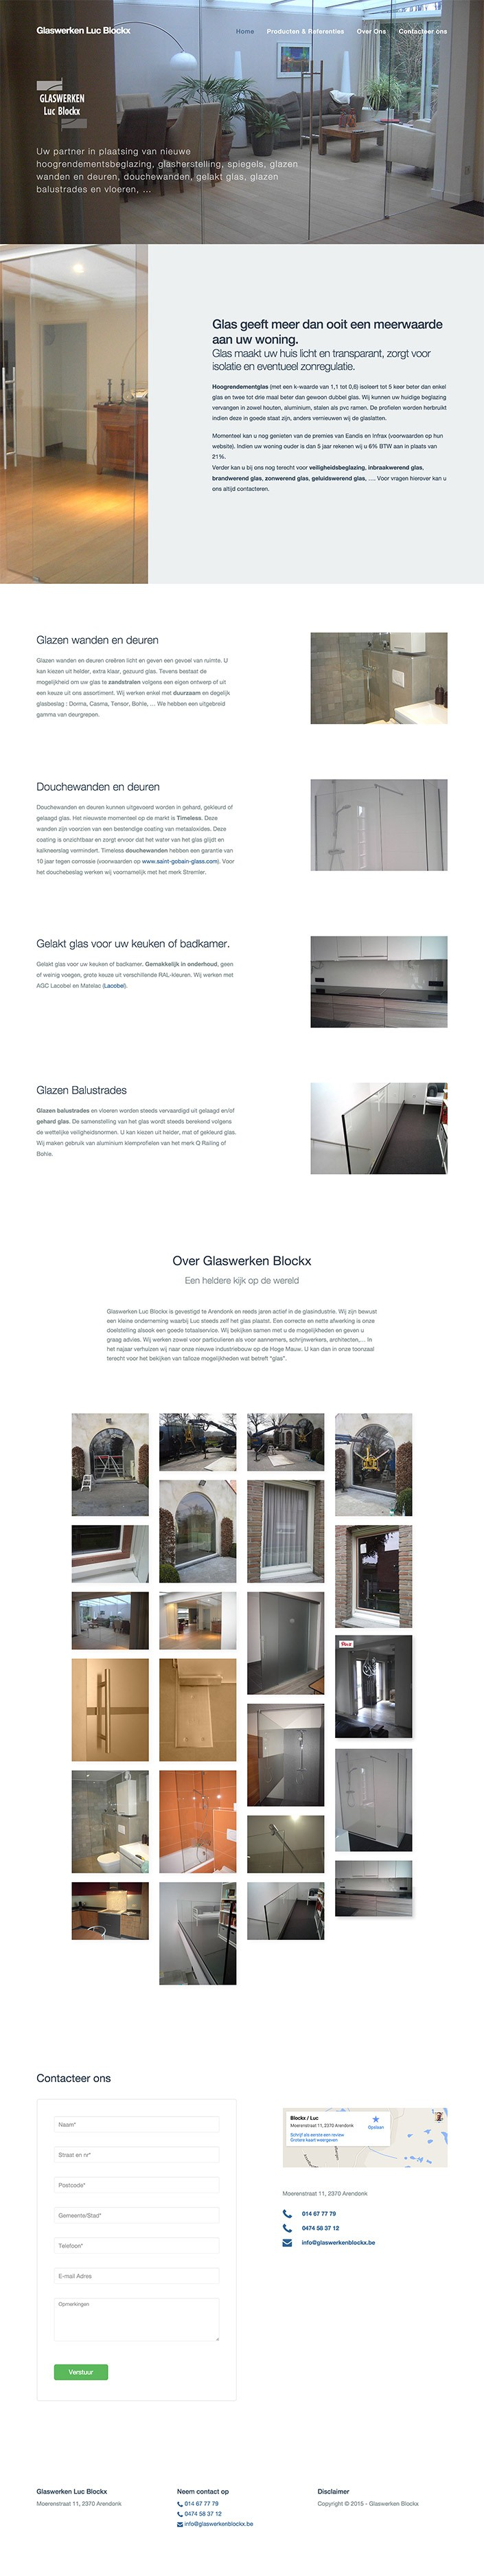 glaswerken Blockx onepager website single page